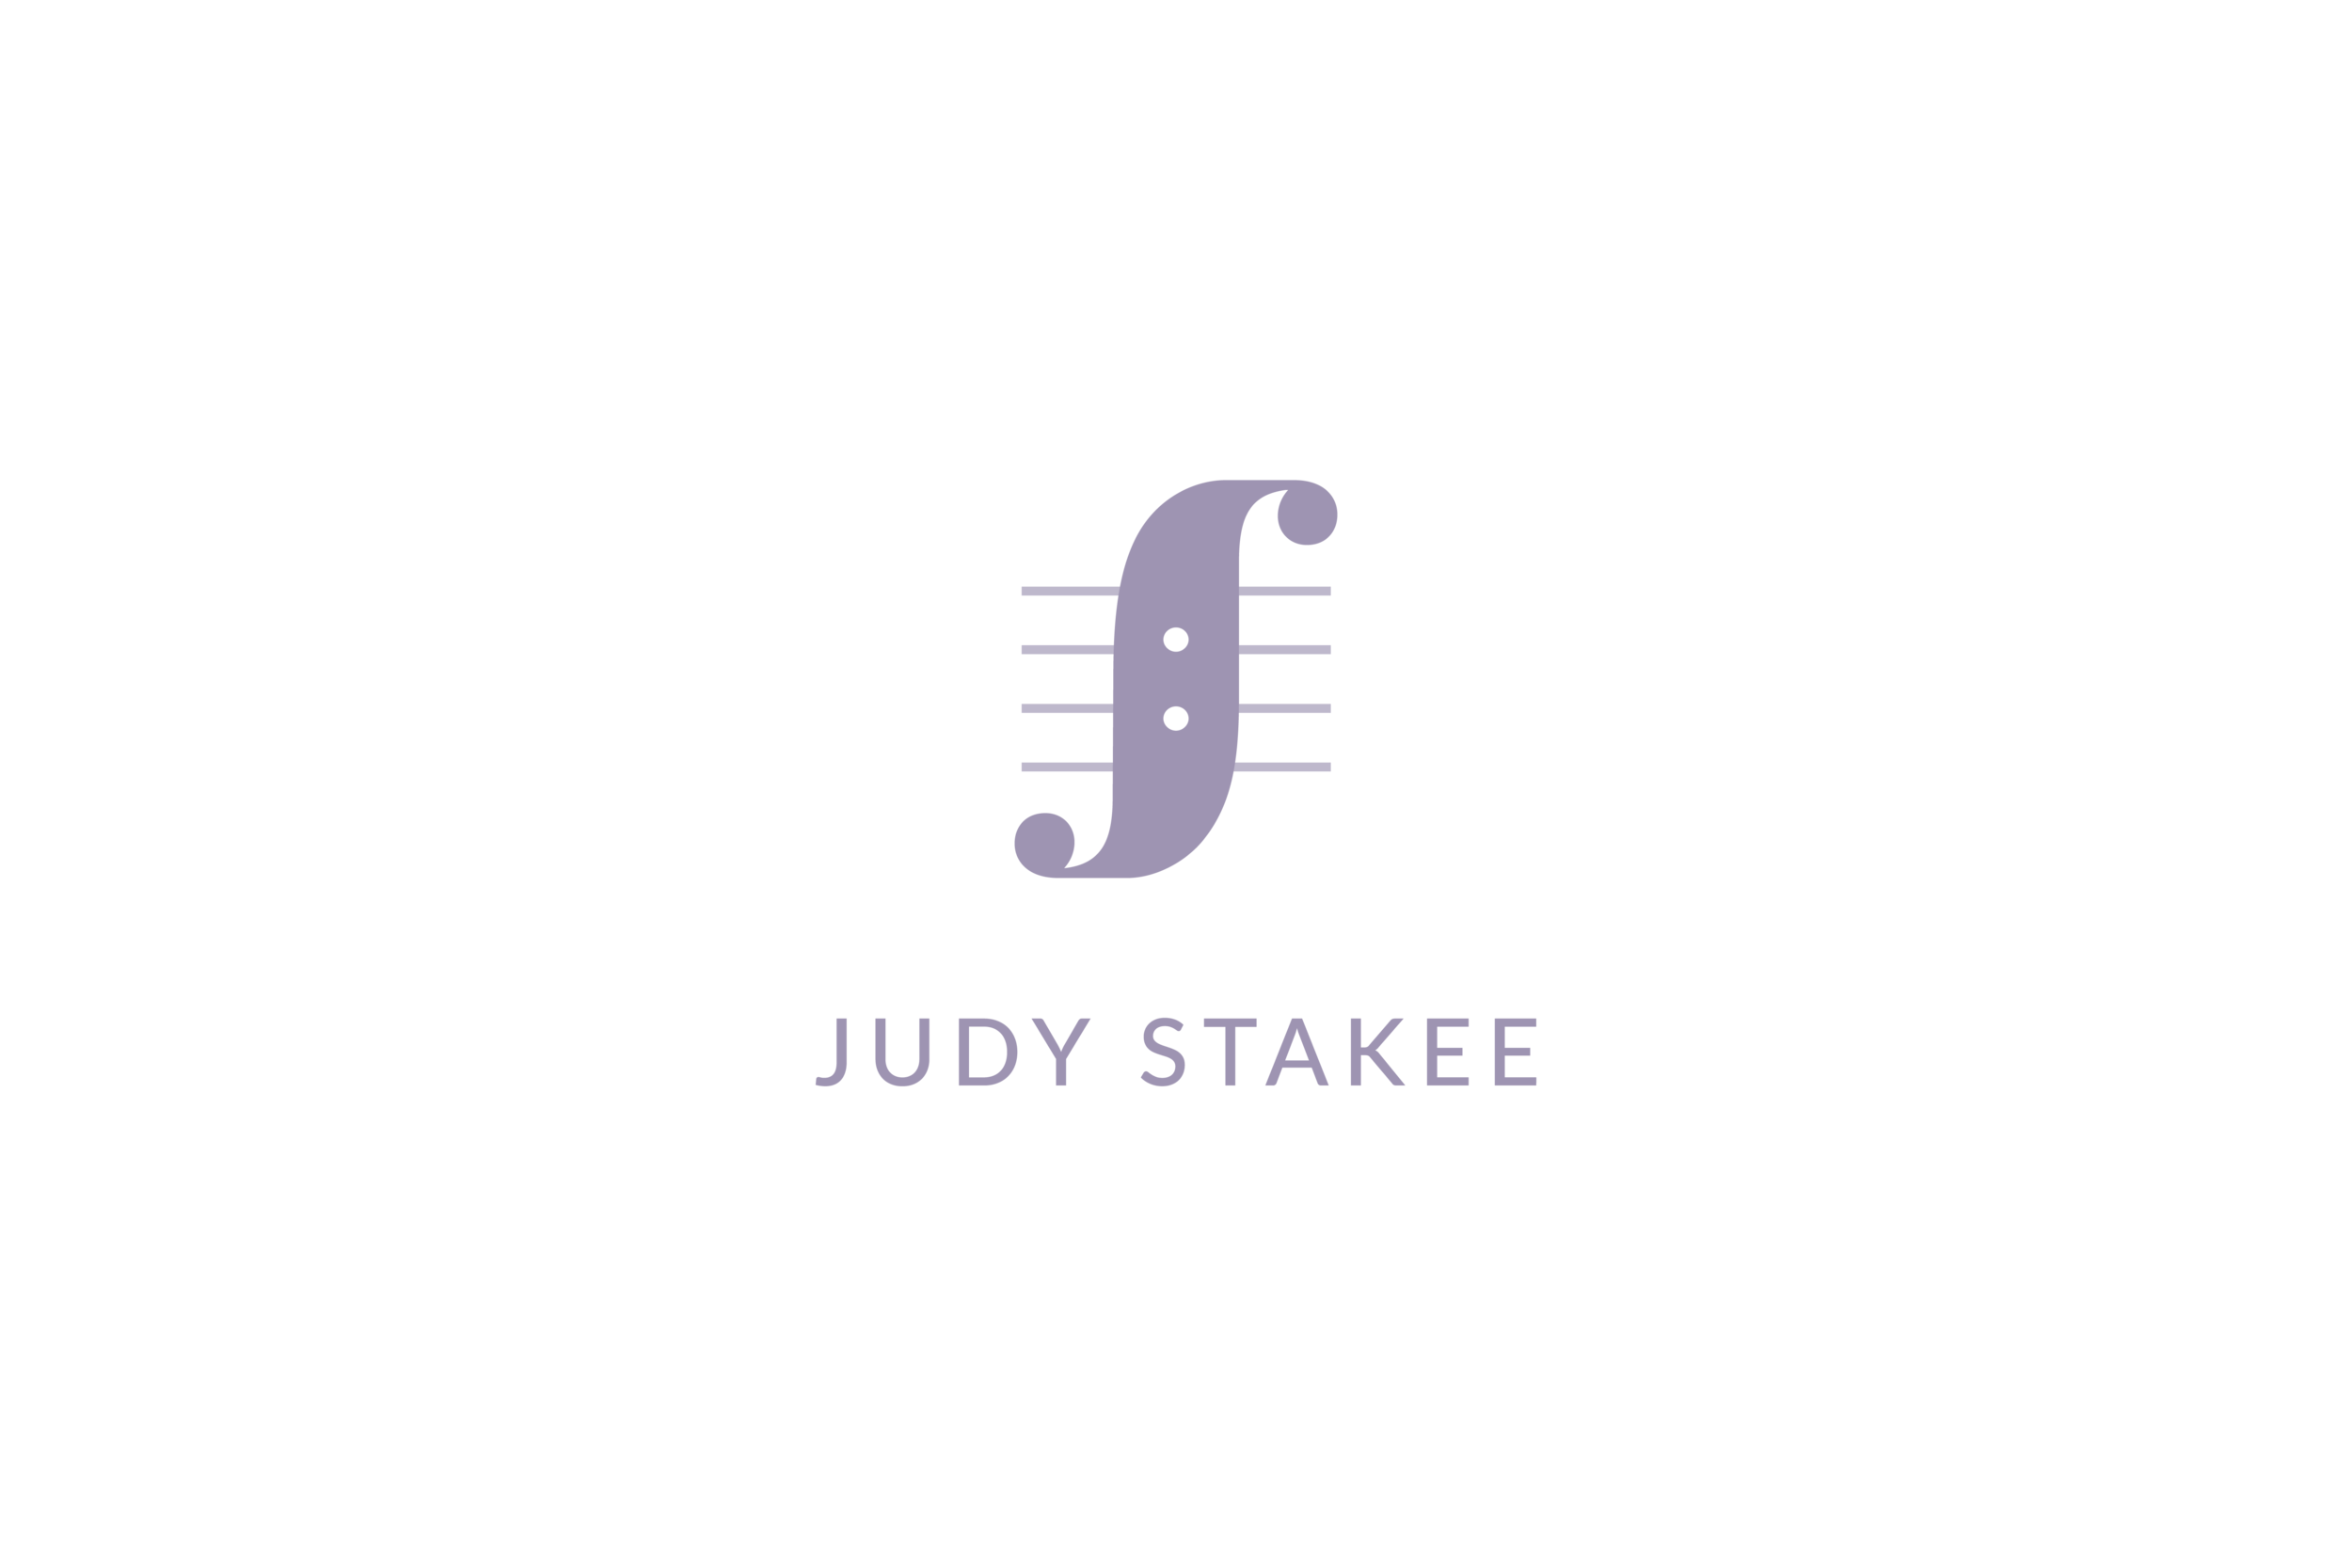 judy-stakee-brand-identity-02.png